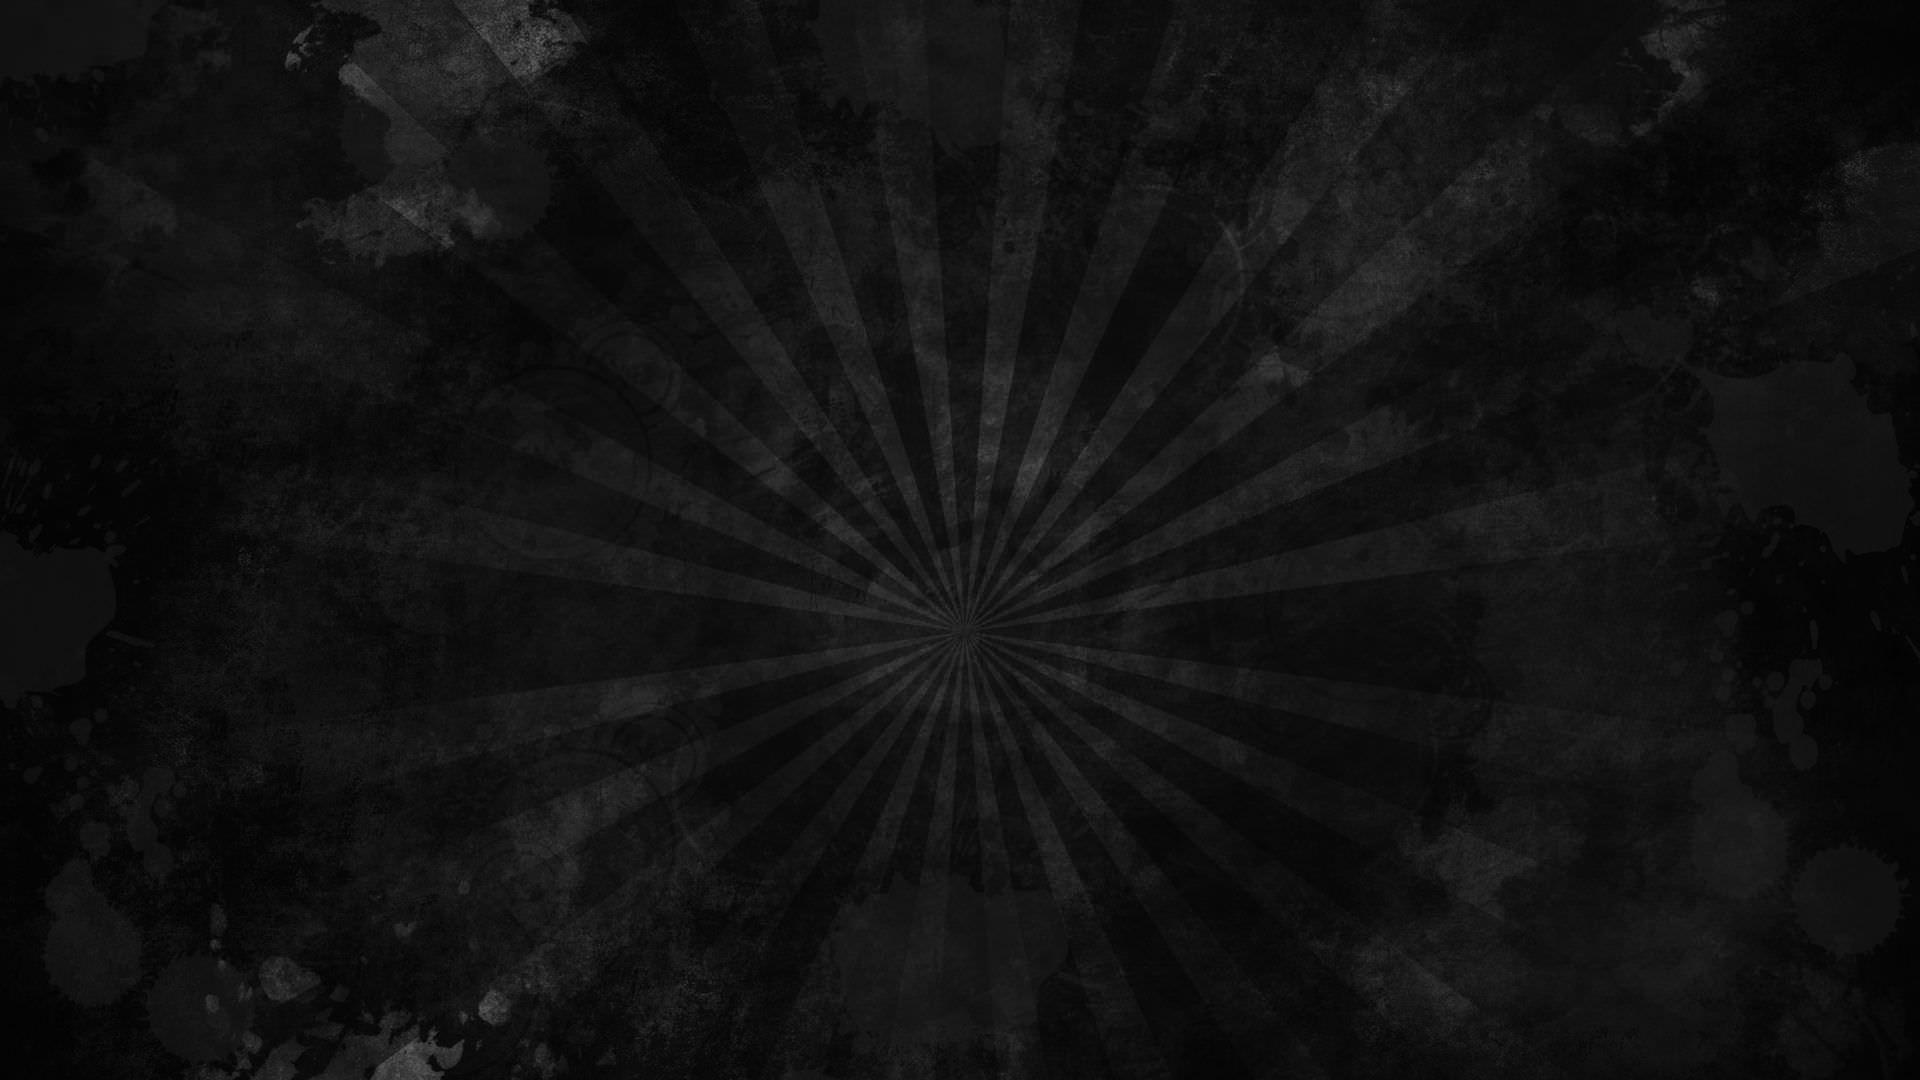 Black Grunge Sunburst Wallpaper